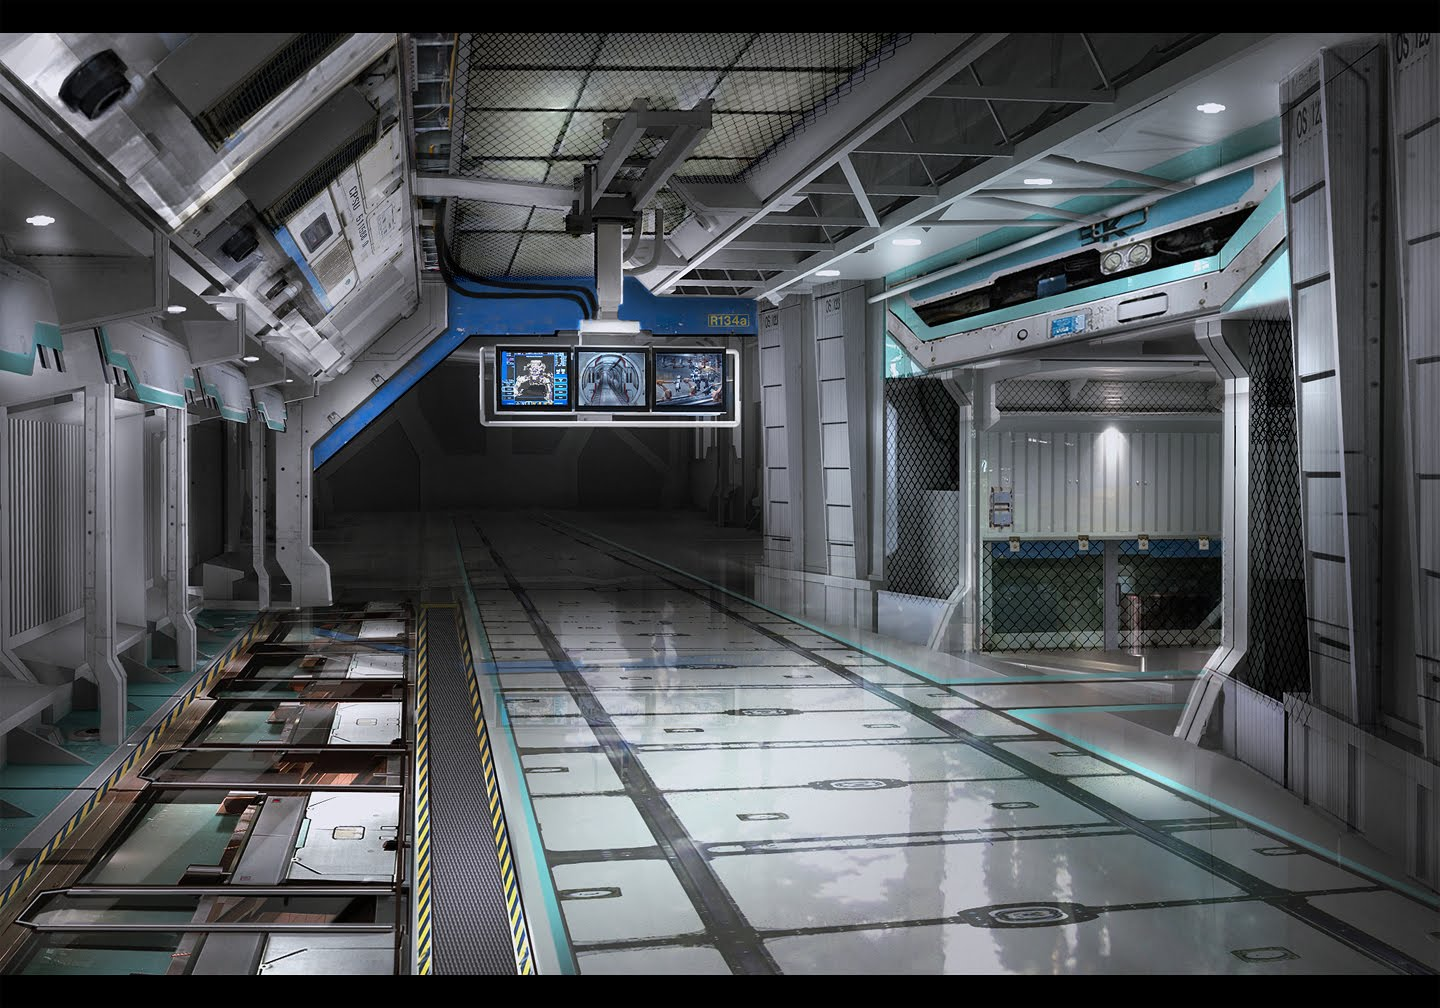 Sci Fi Space Station Interior (page 3) - Pics about space